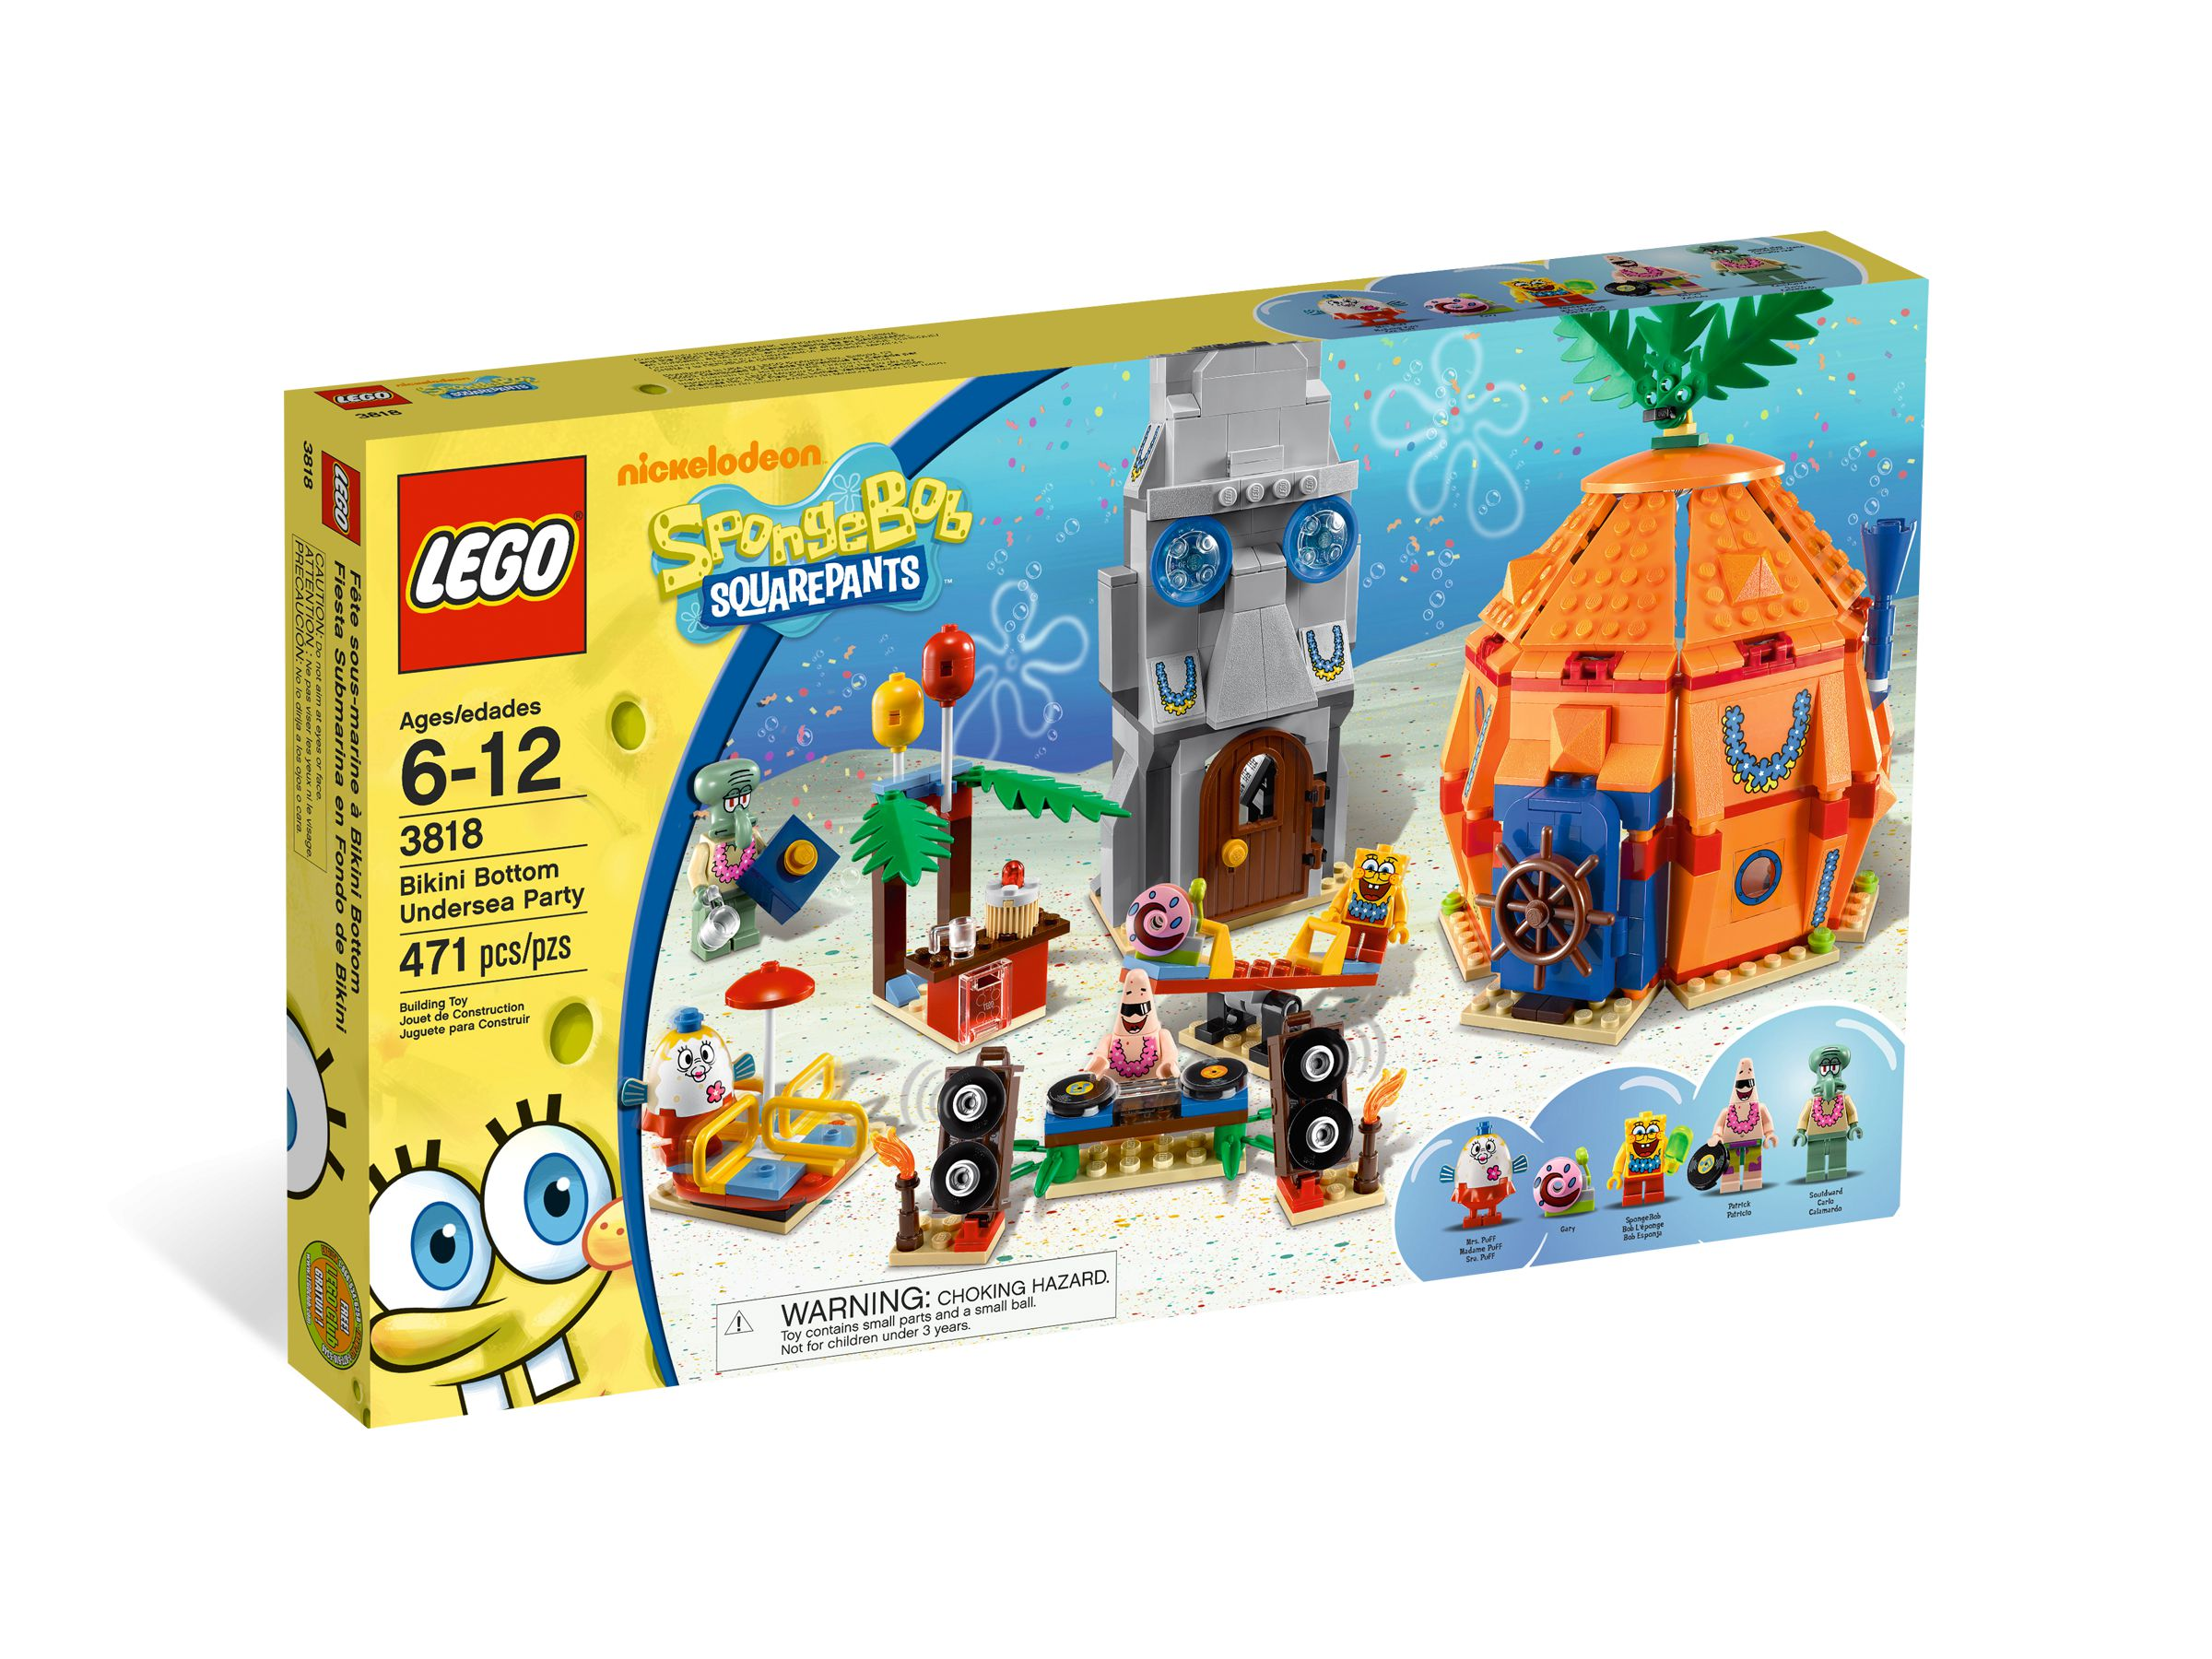 LEGO SpongeBob SquarePants 3818 Bikini Bottom Undersea Party LEGO_3818_alt1.jpg